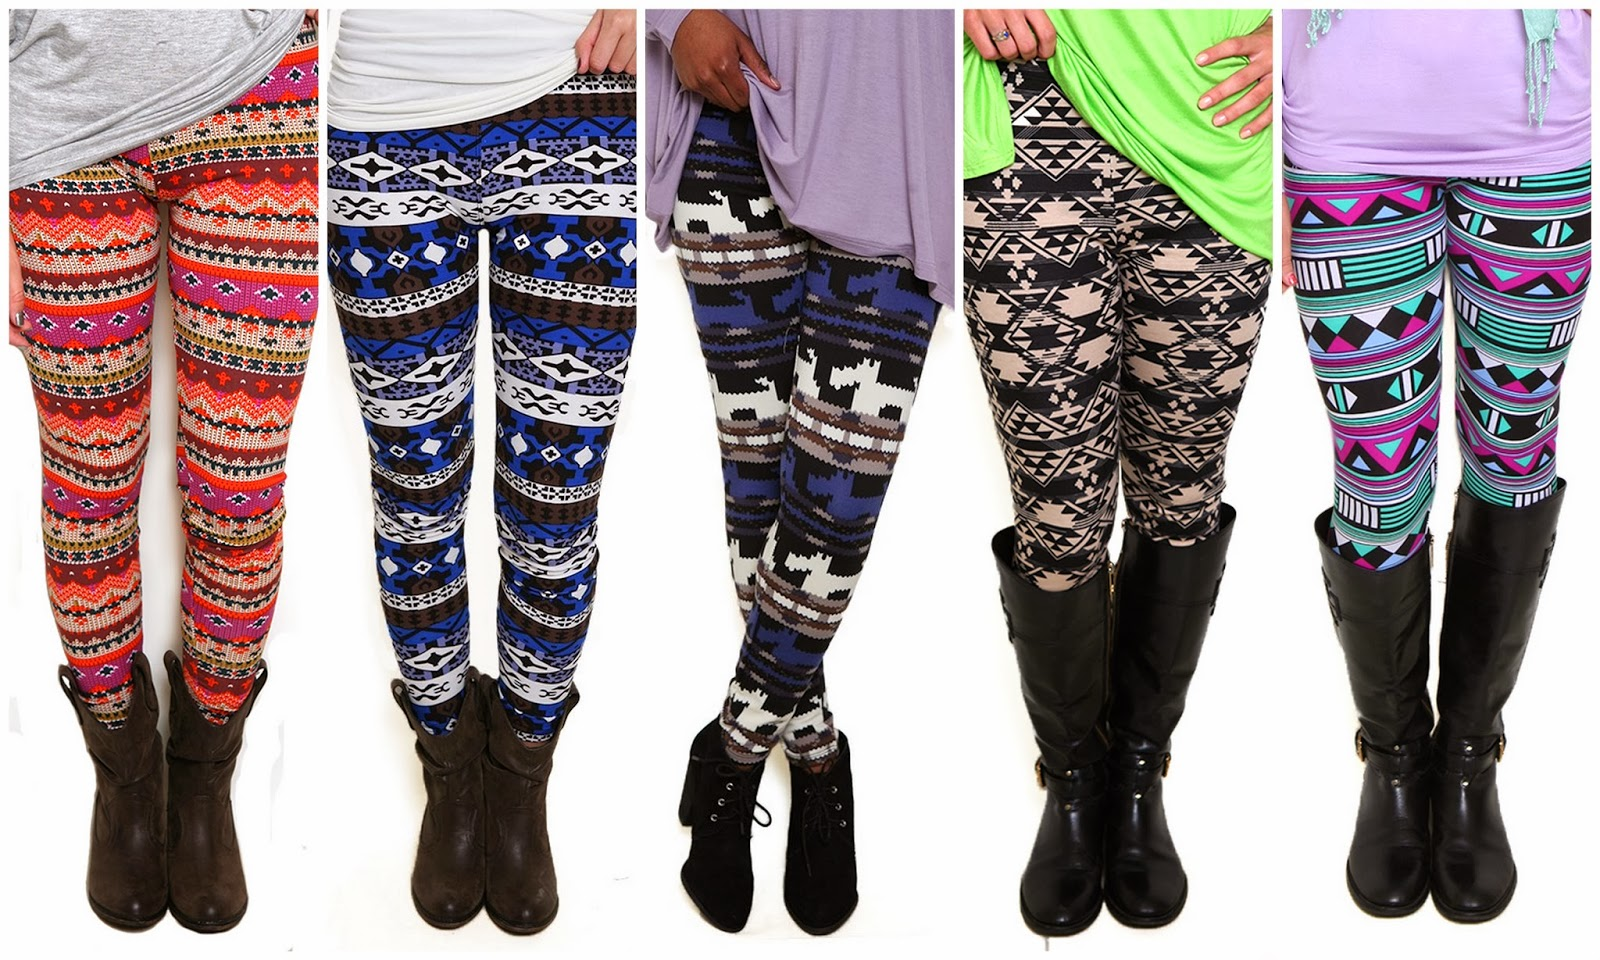 Flourish Boutique & Gallery: How To Style Your Patterned ...